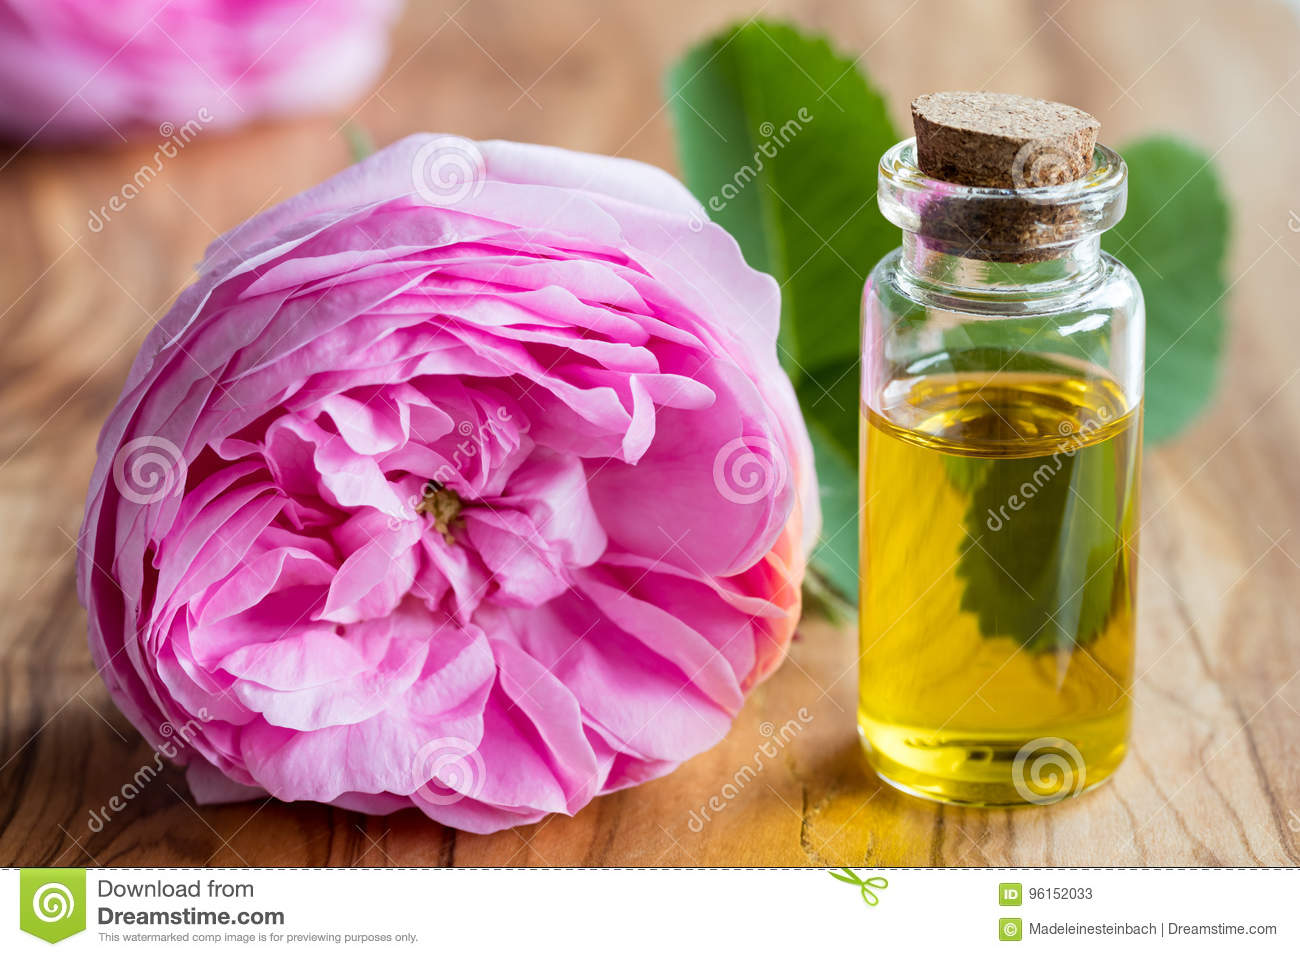 A bottle of essential oil with a rose flower